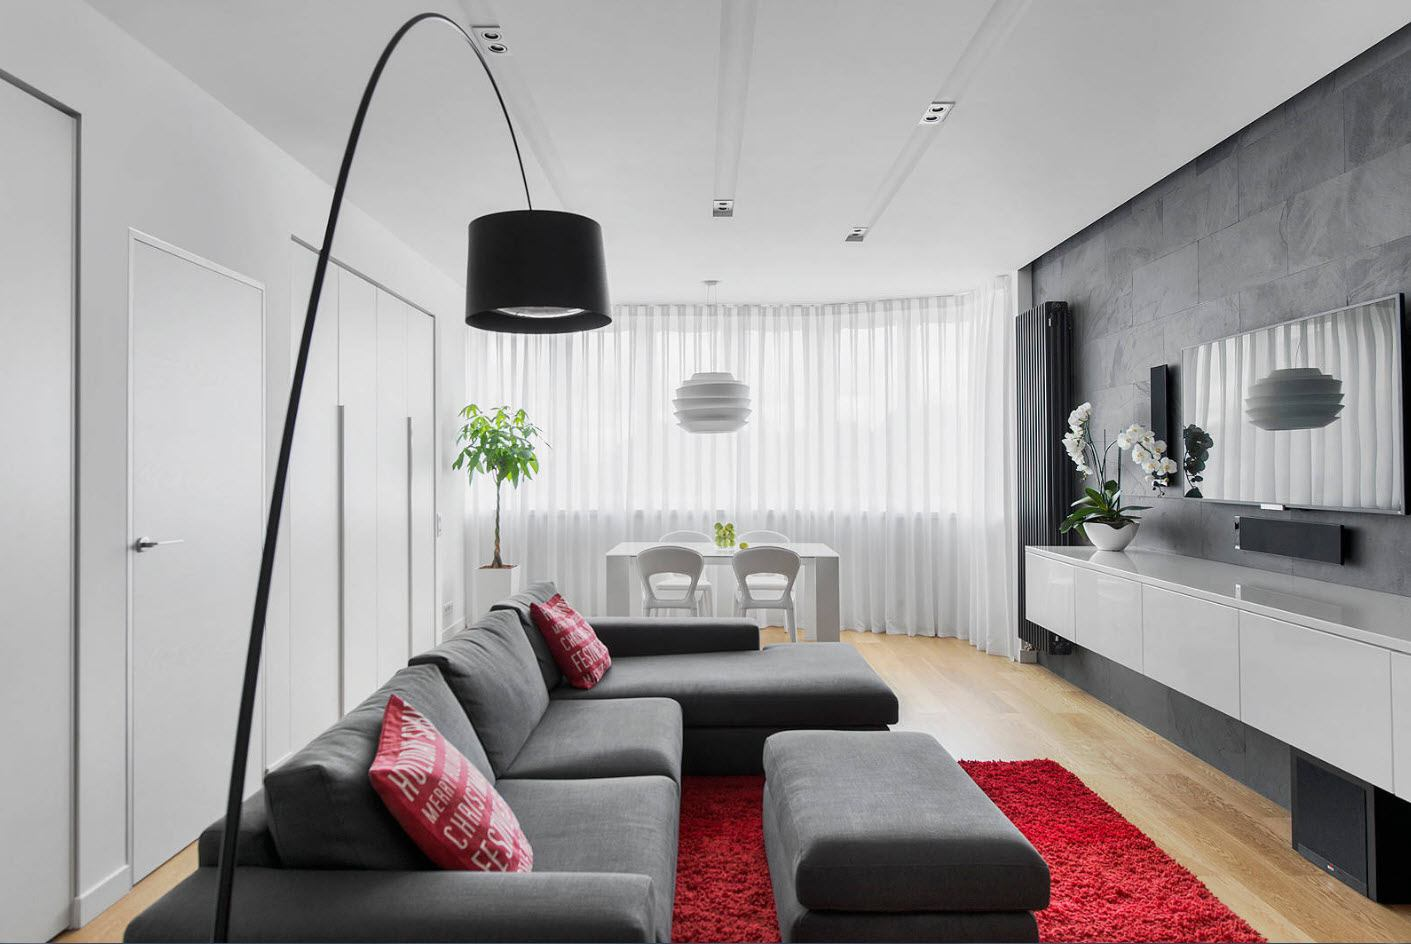 Red carpet, black lamp and furniture as accents for light colored living room